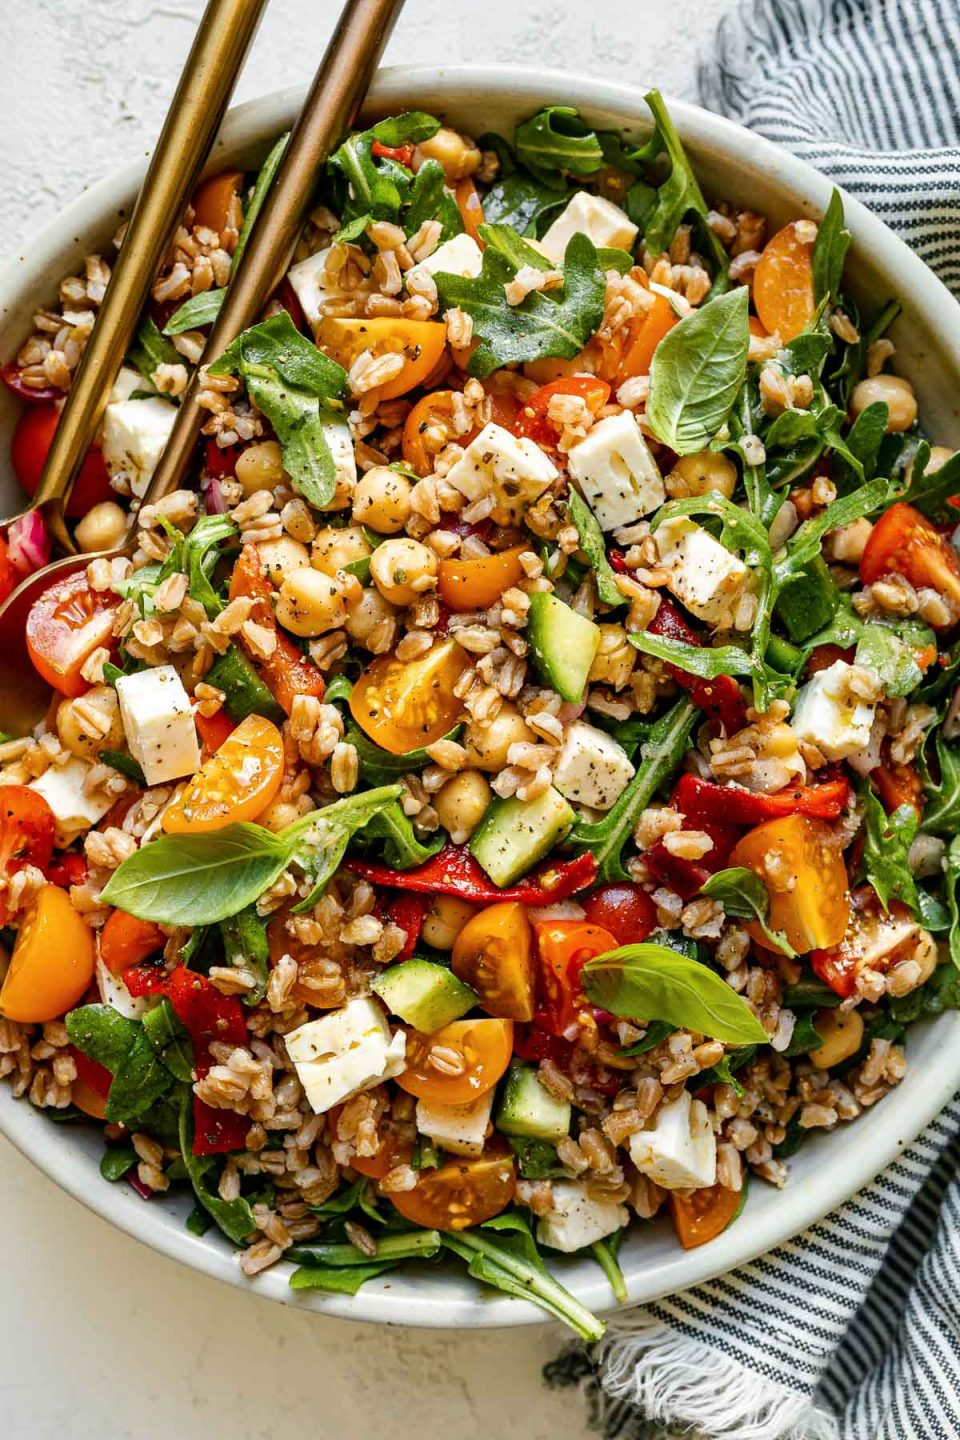 Greek farro salad in ceramic serving dish atop a white surface. The farro salad is tossed & topped with fresh basil leaves & has serving spoons nestled in it. The bowl is surrounded by a striped gray linen napkin.